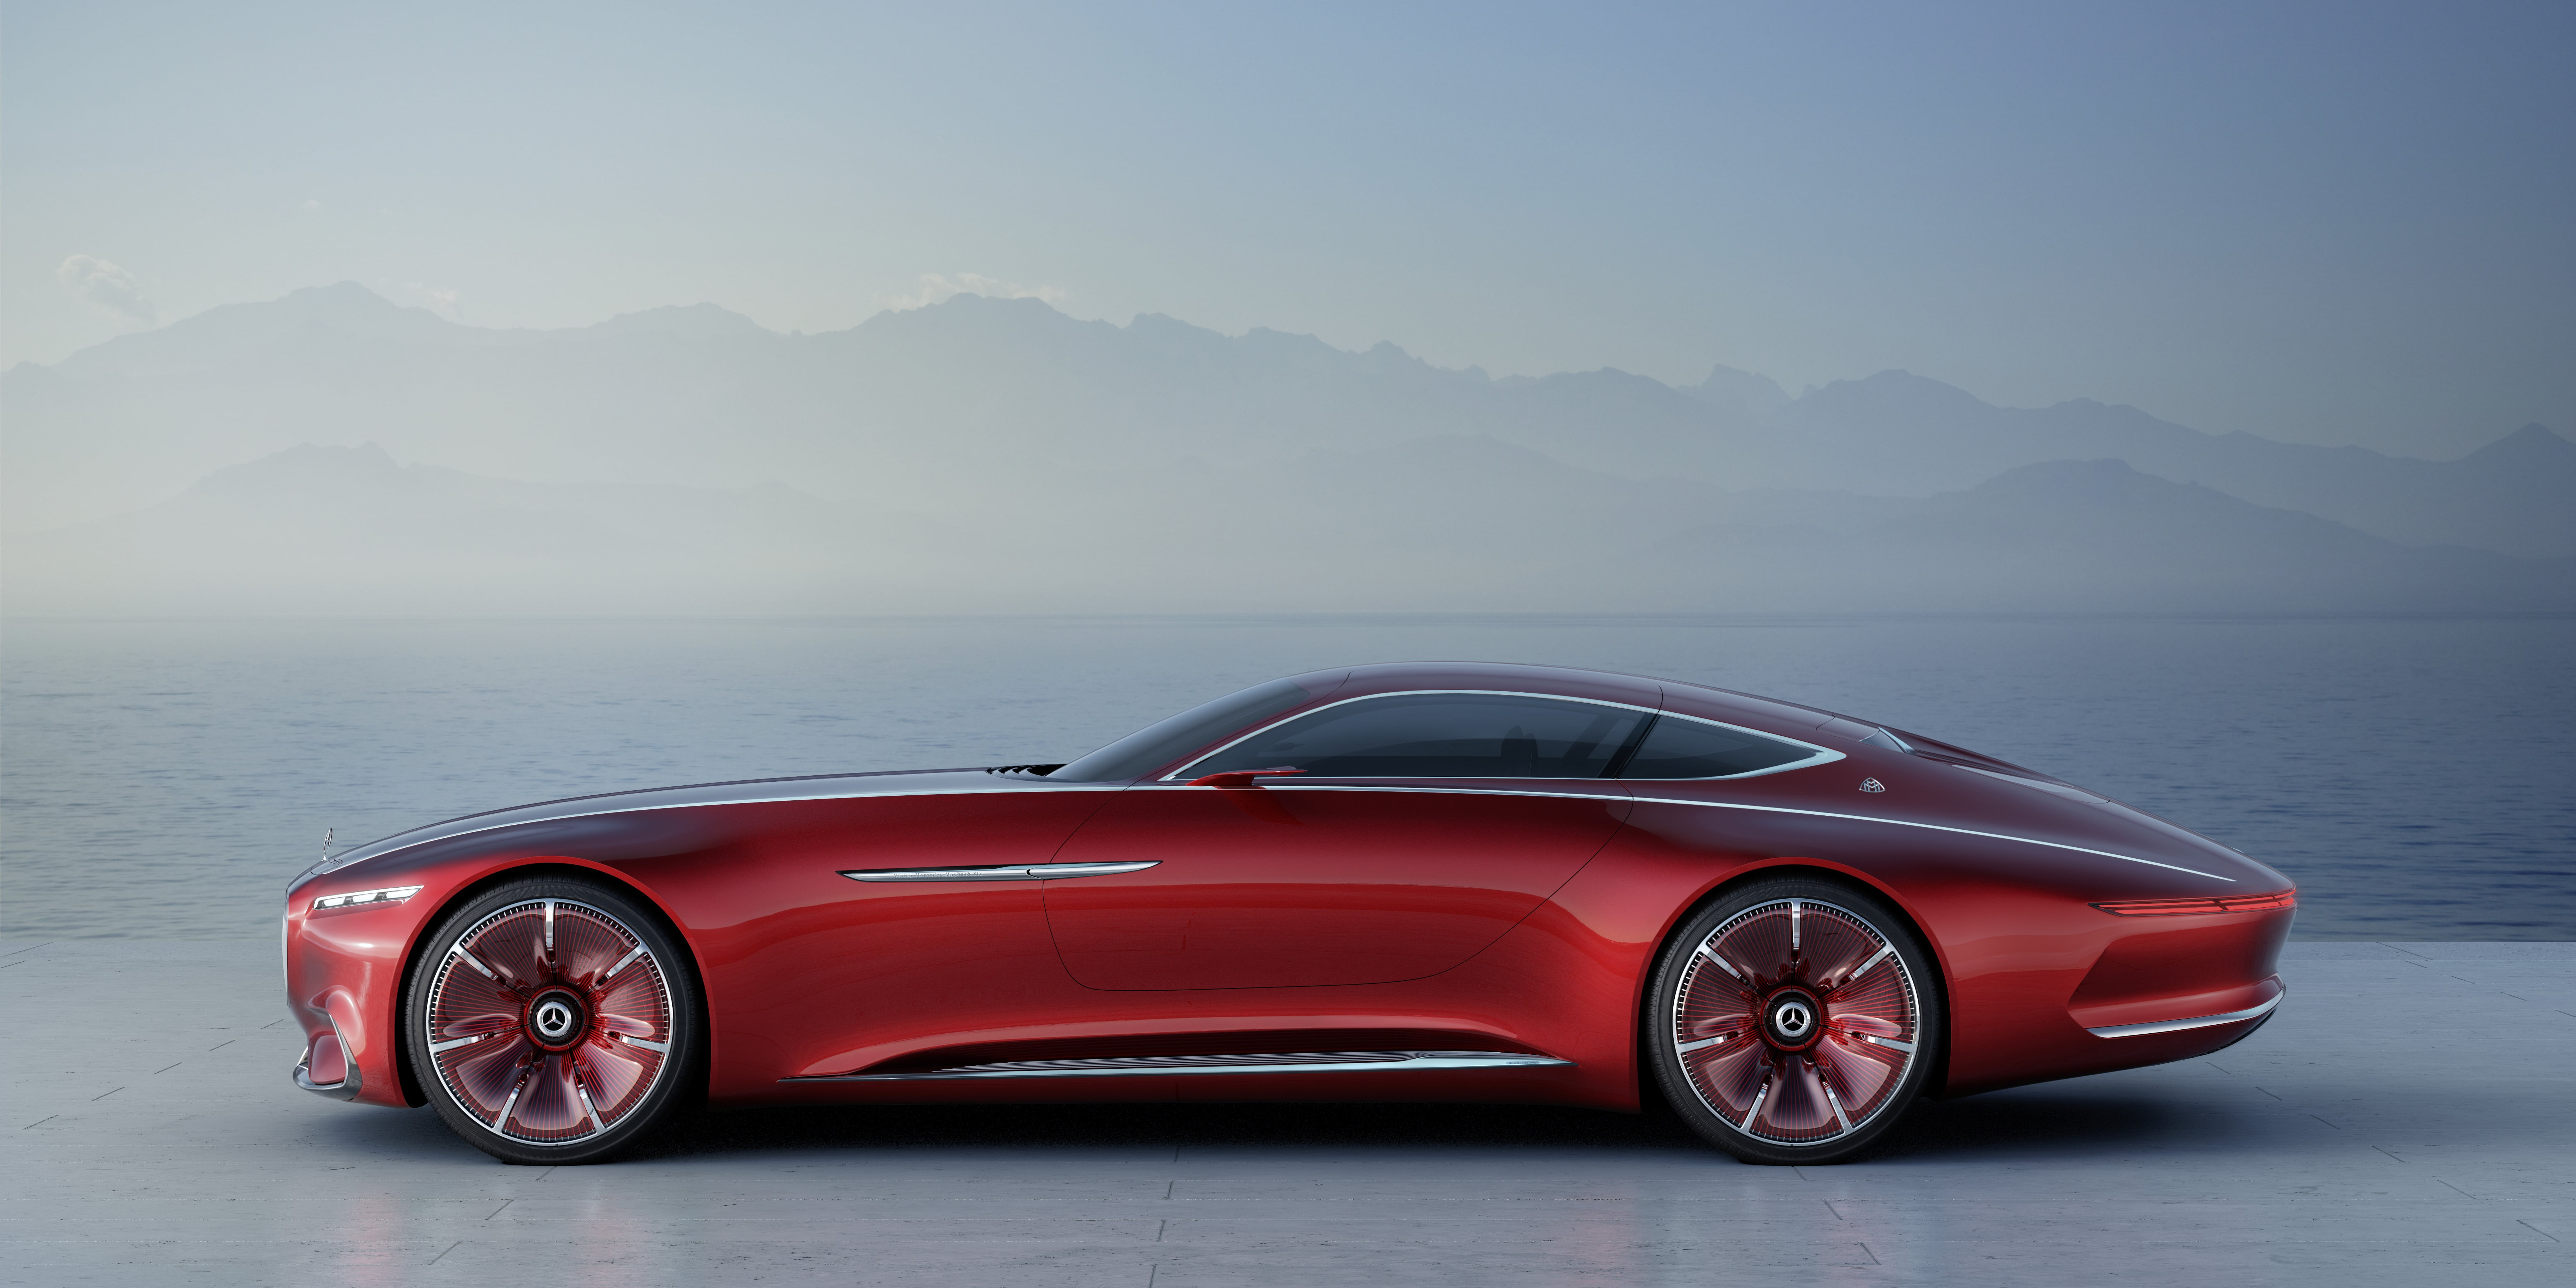 100 years on why Mercedes-Maybach is the pinnacle of luxury and creative empowerment